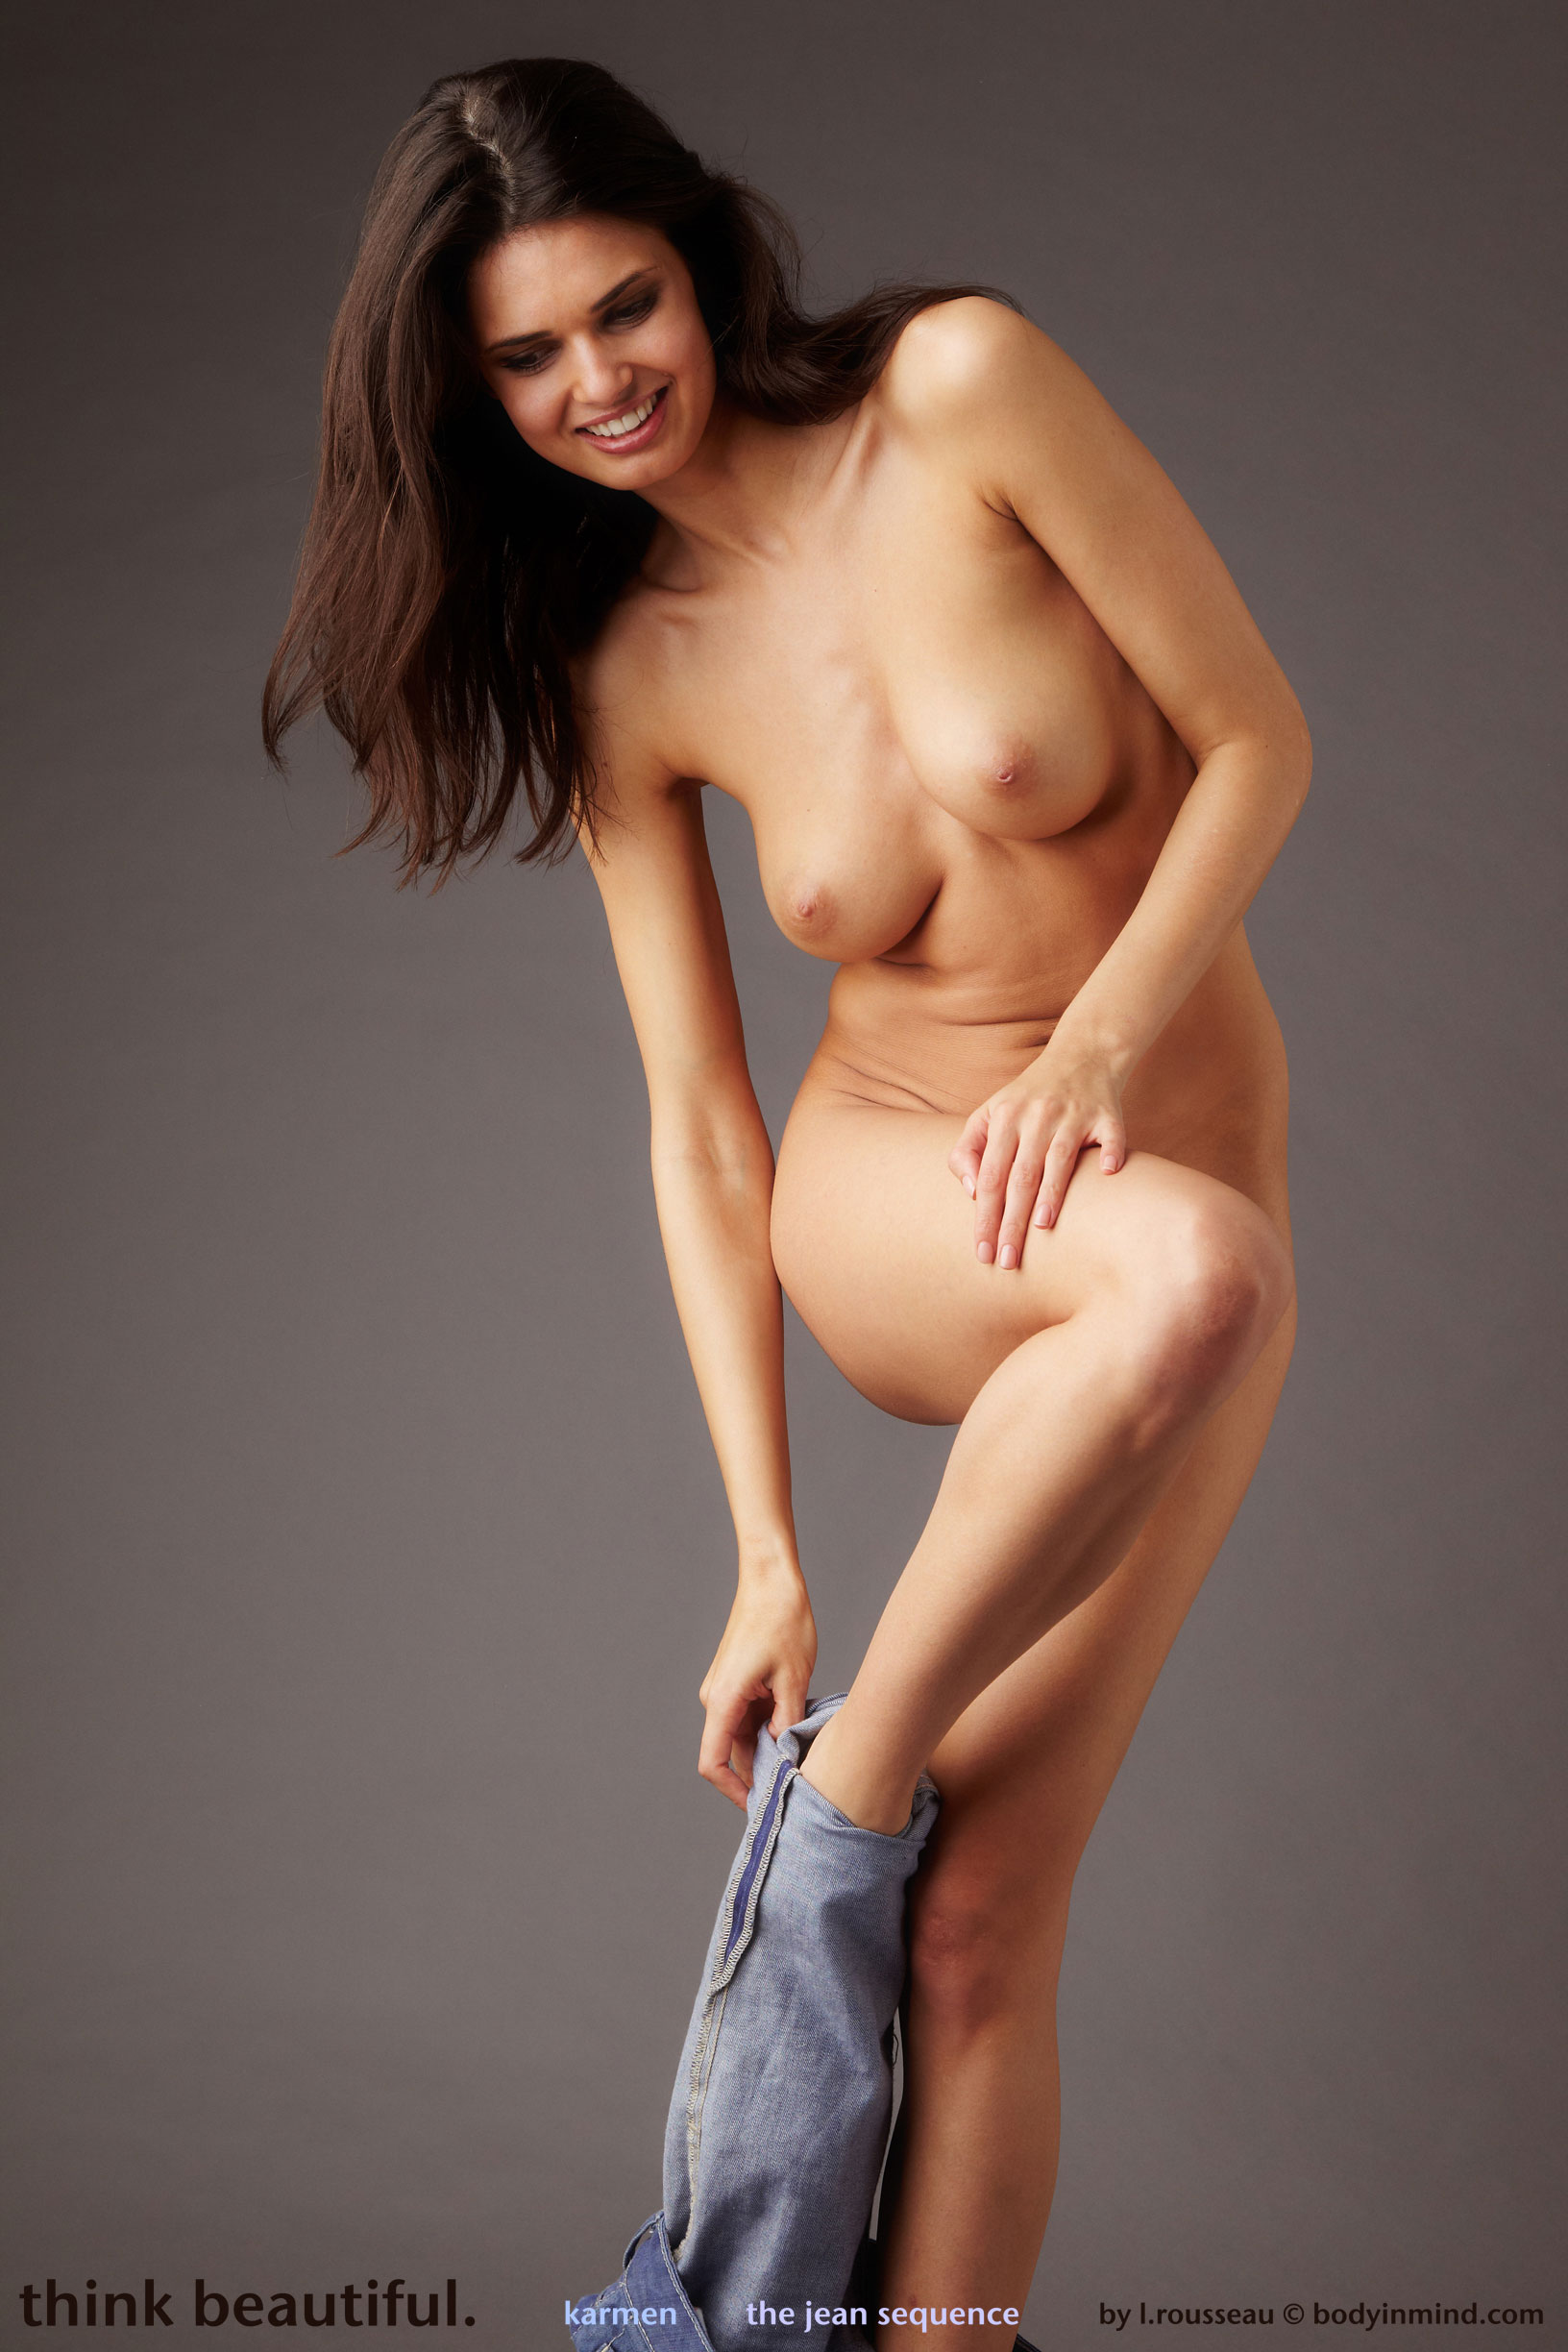 Indo girls nude only